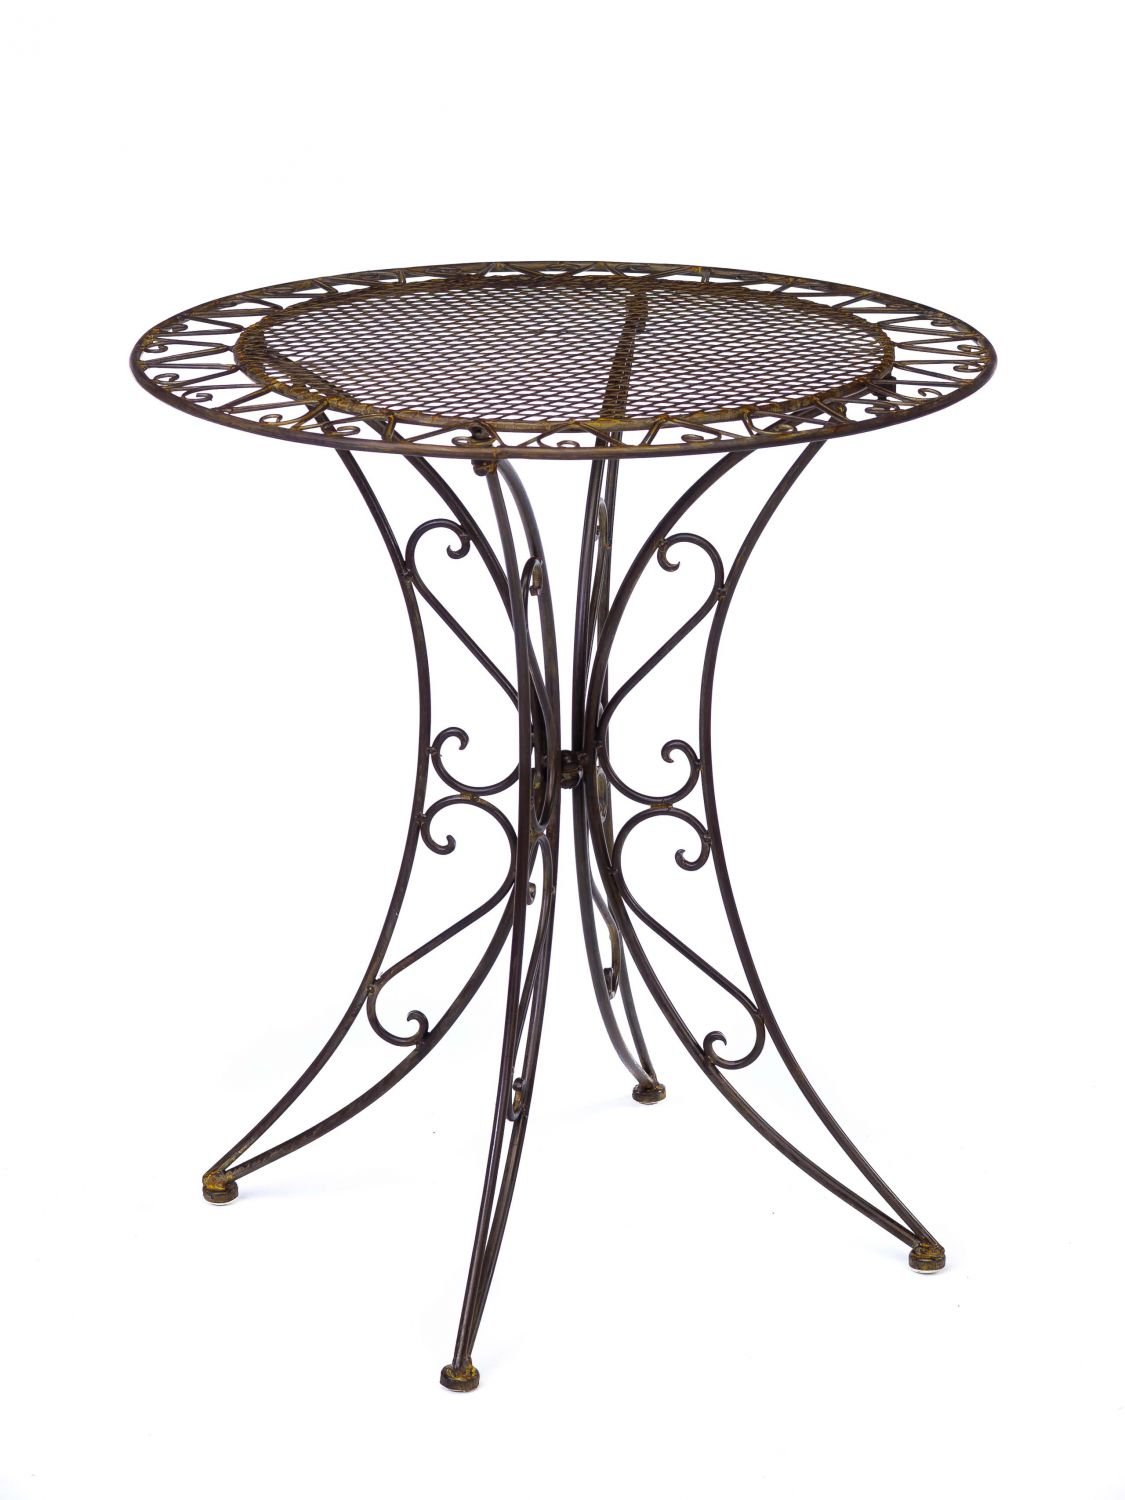 vintage wrought iron table and chairs kampa fishing chair antique style garden furniture set 2